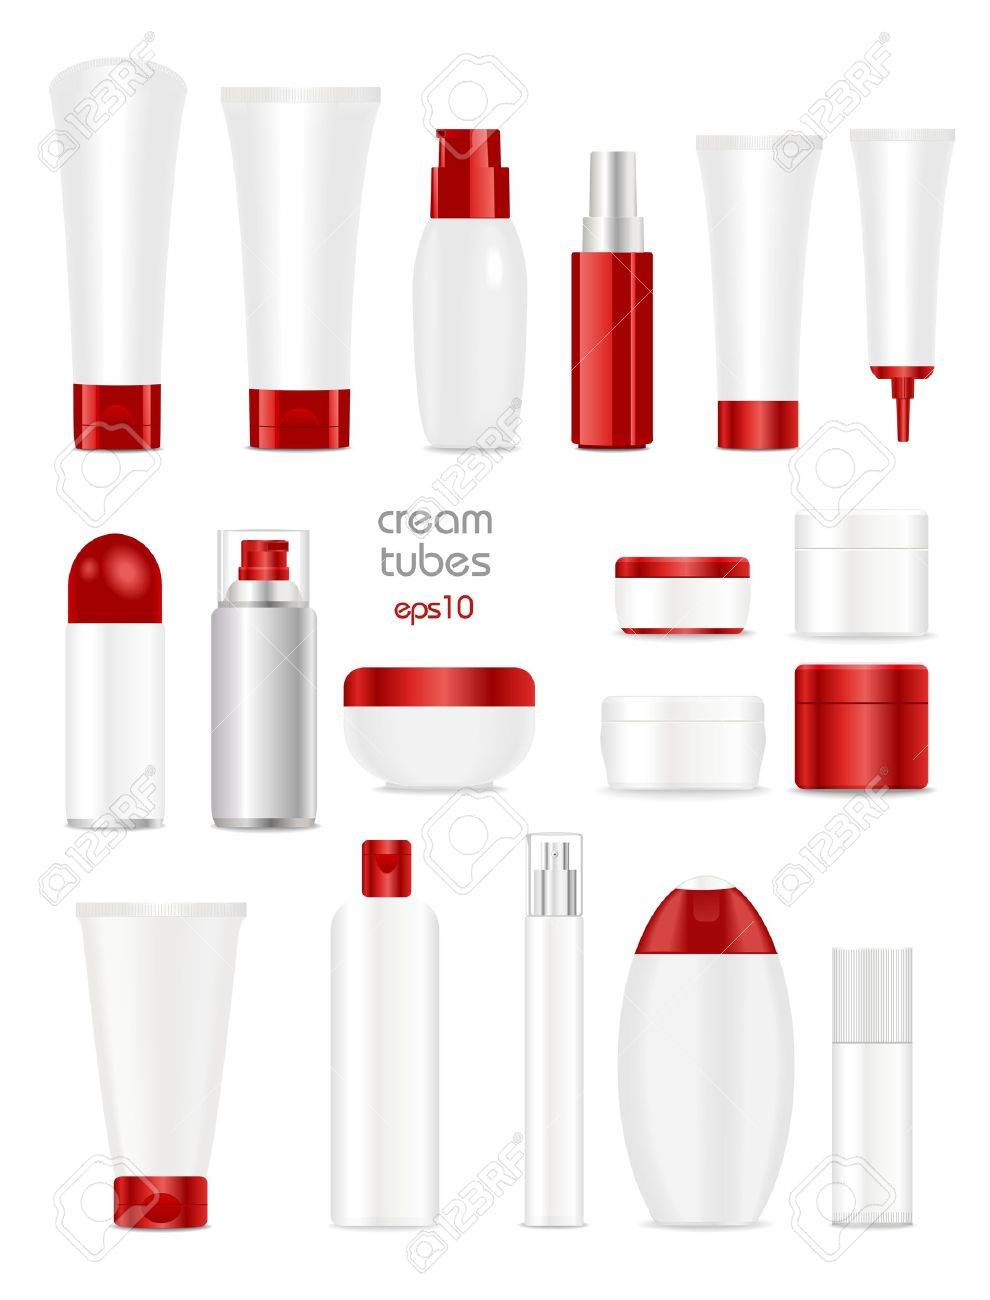 Blank cosmetic tubes on white background. White and red colors. Place for your text. - 40972378